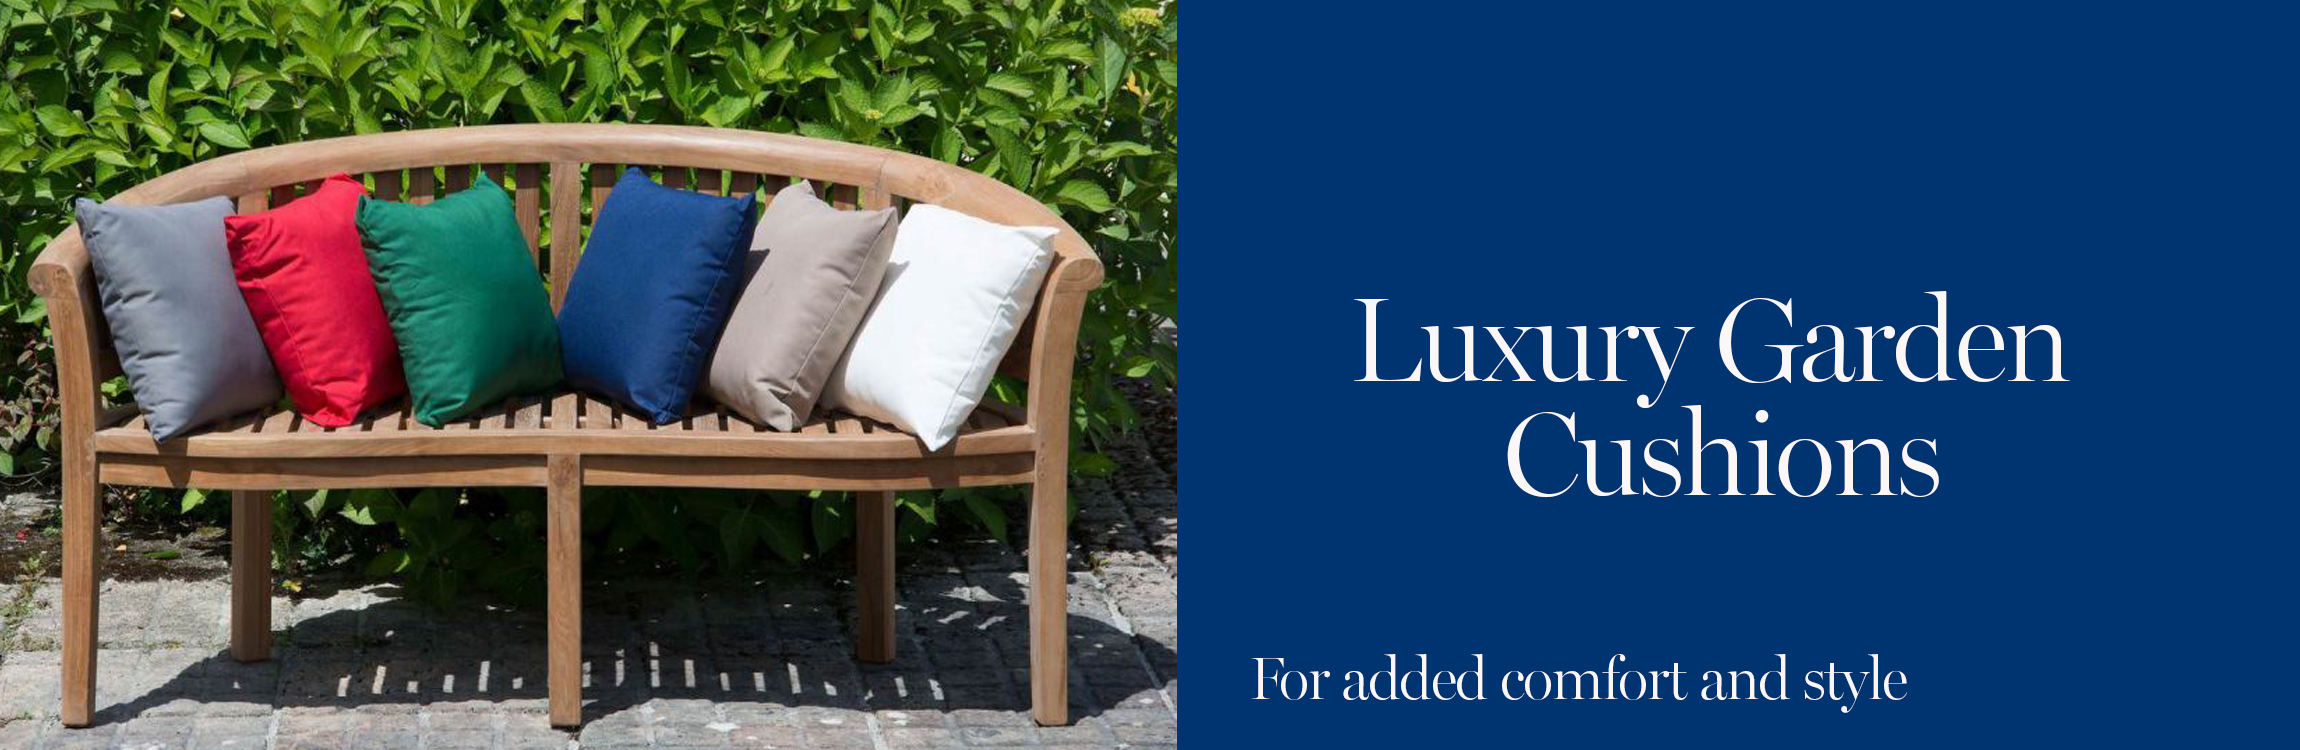 Luxury Garden Cushions